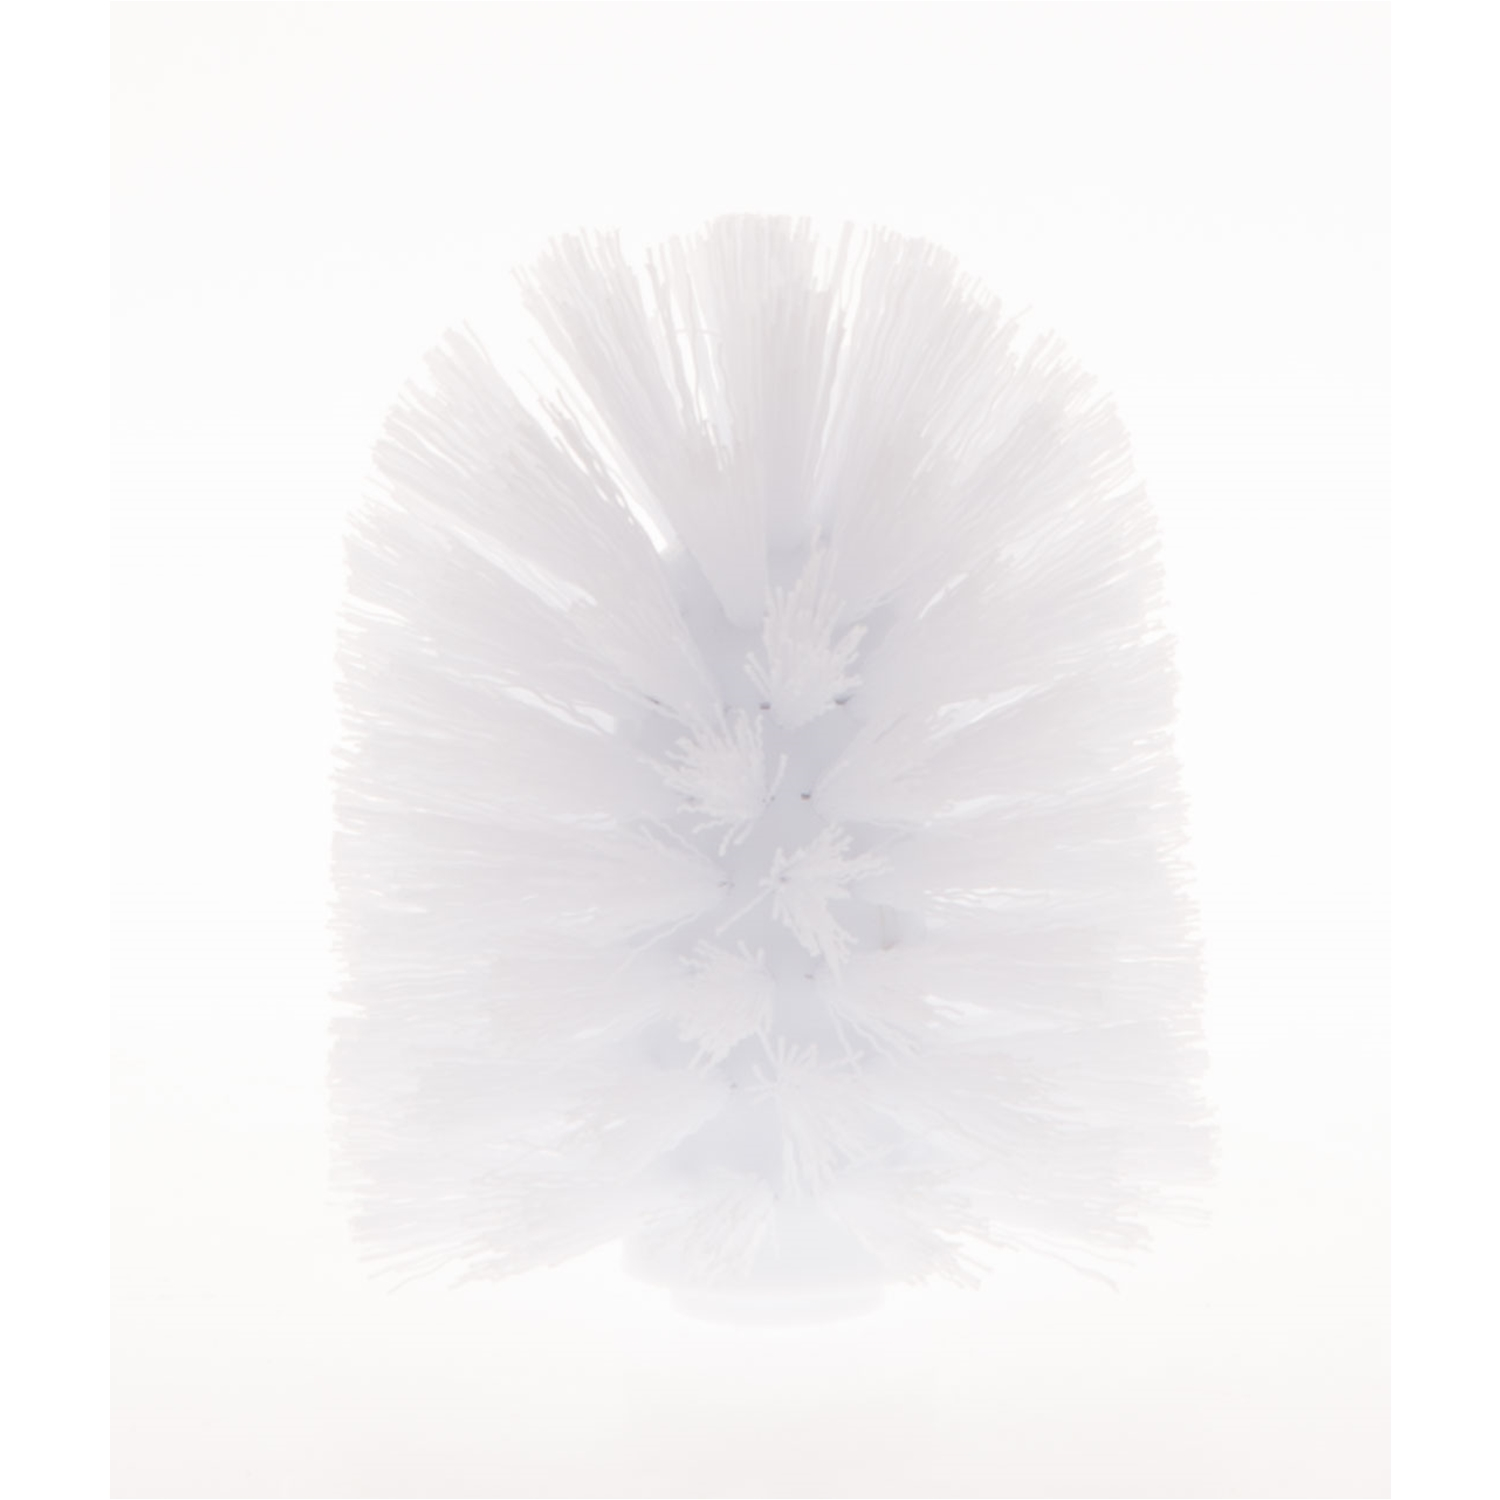 Image of Casa Spare Toilet Brush Head, White